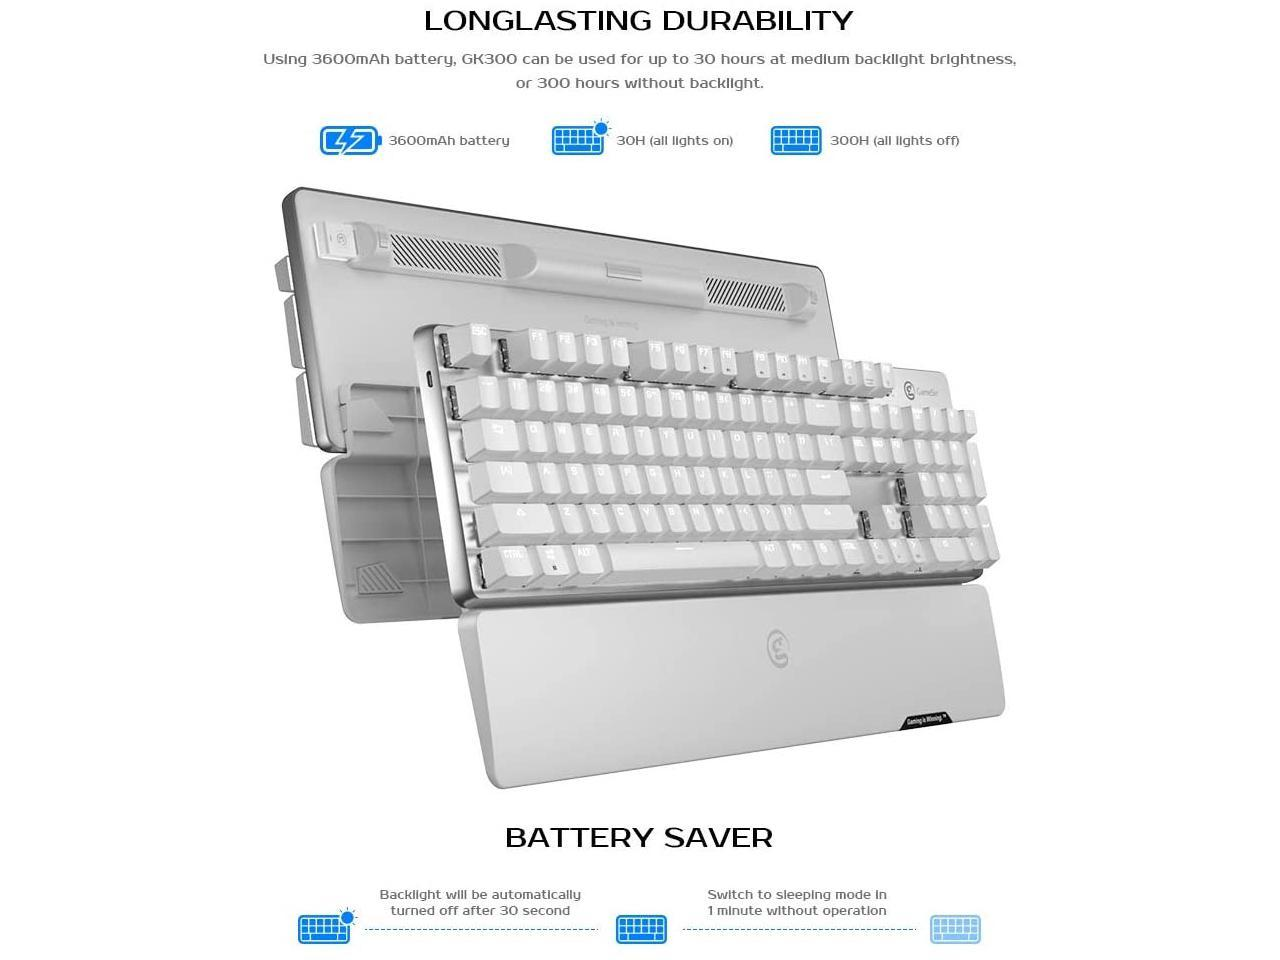 GameSir GK300 Wireless Gaming Keyboard,Connect with 2.4GHz Wireless/&Bluetooth,TTC Mechanical Switches LED Backlit 104 Keys